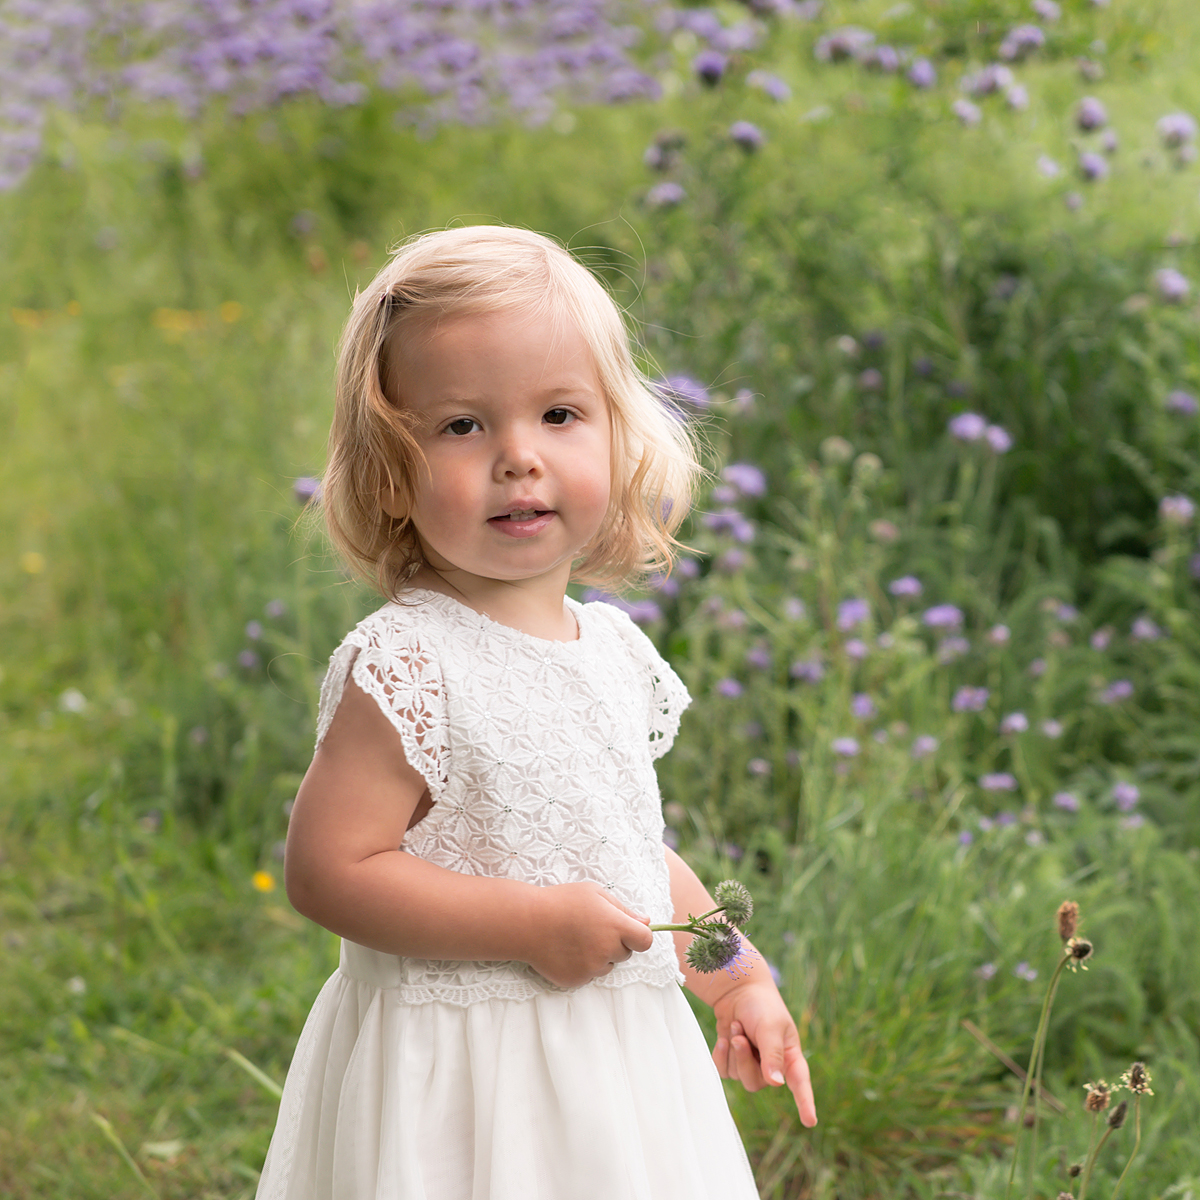 Little girl holds a flower in a field of wildflowers in Crane Park